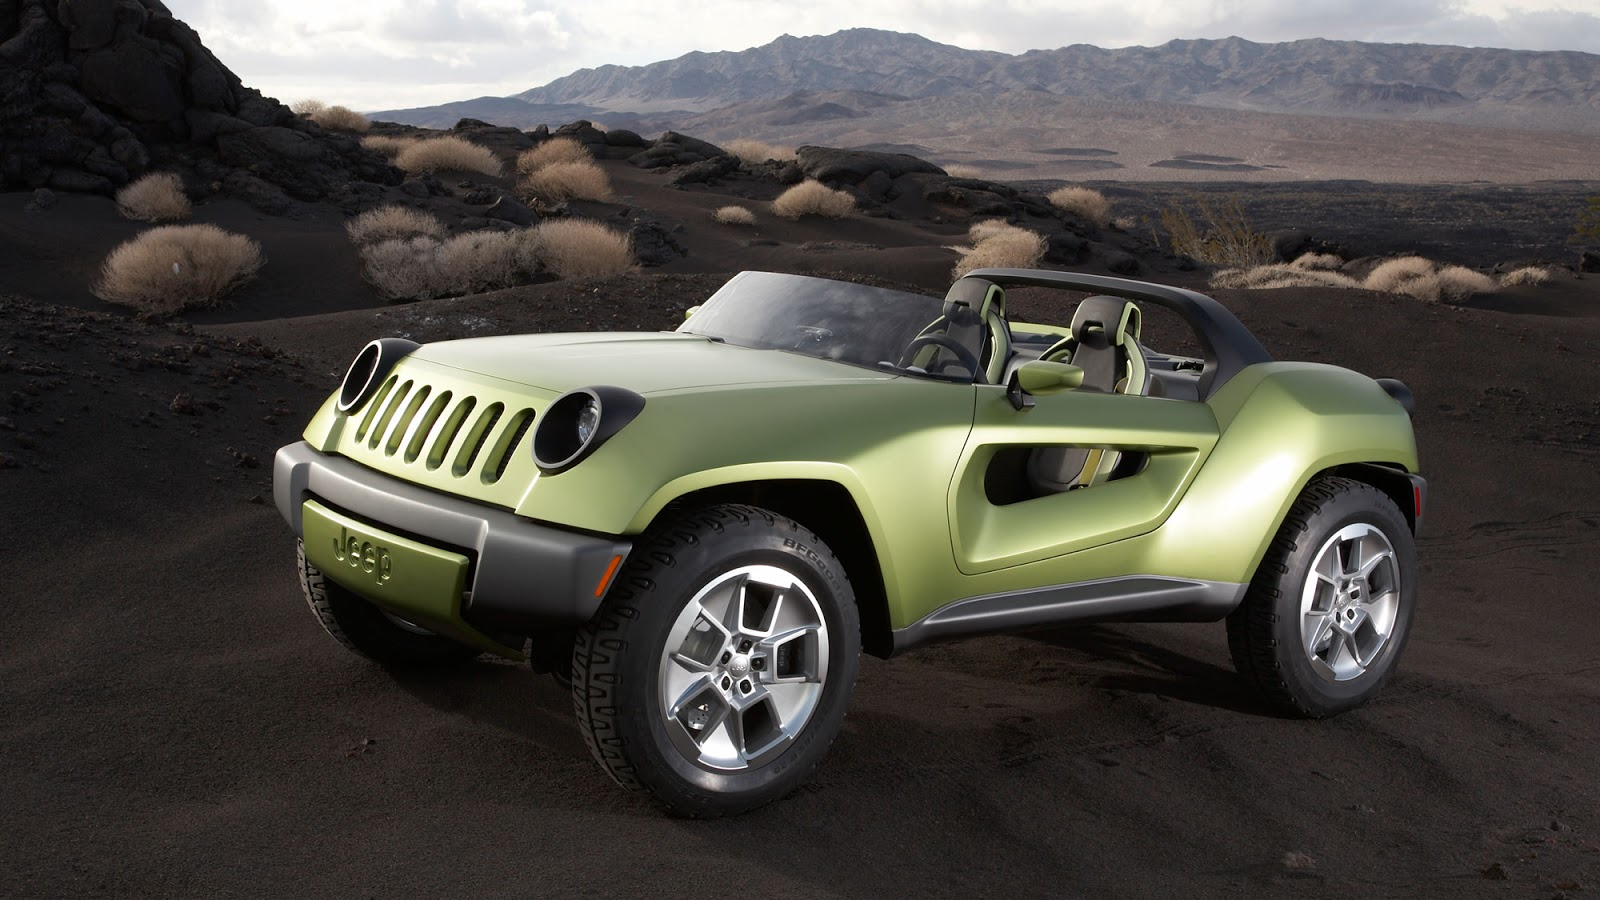 Jeep Renegade Concept 2008 - front view photo